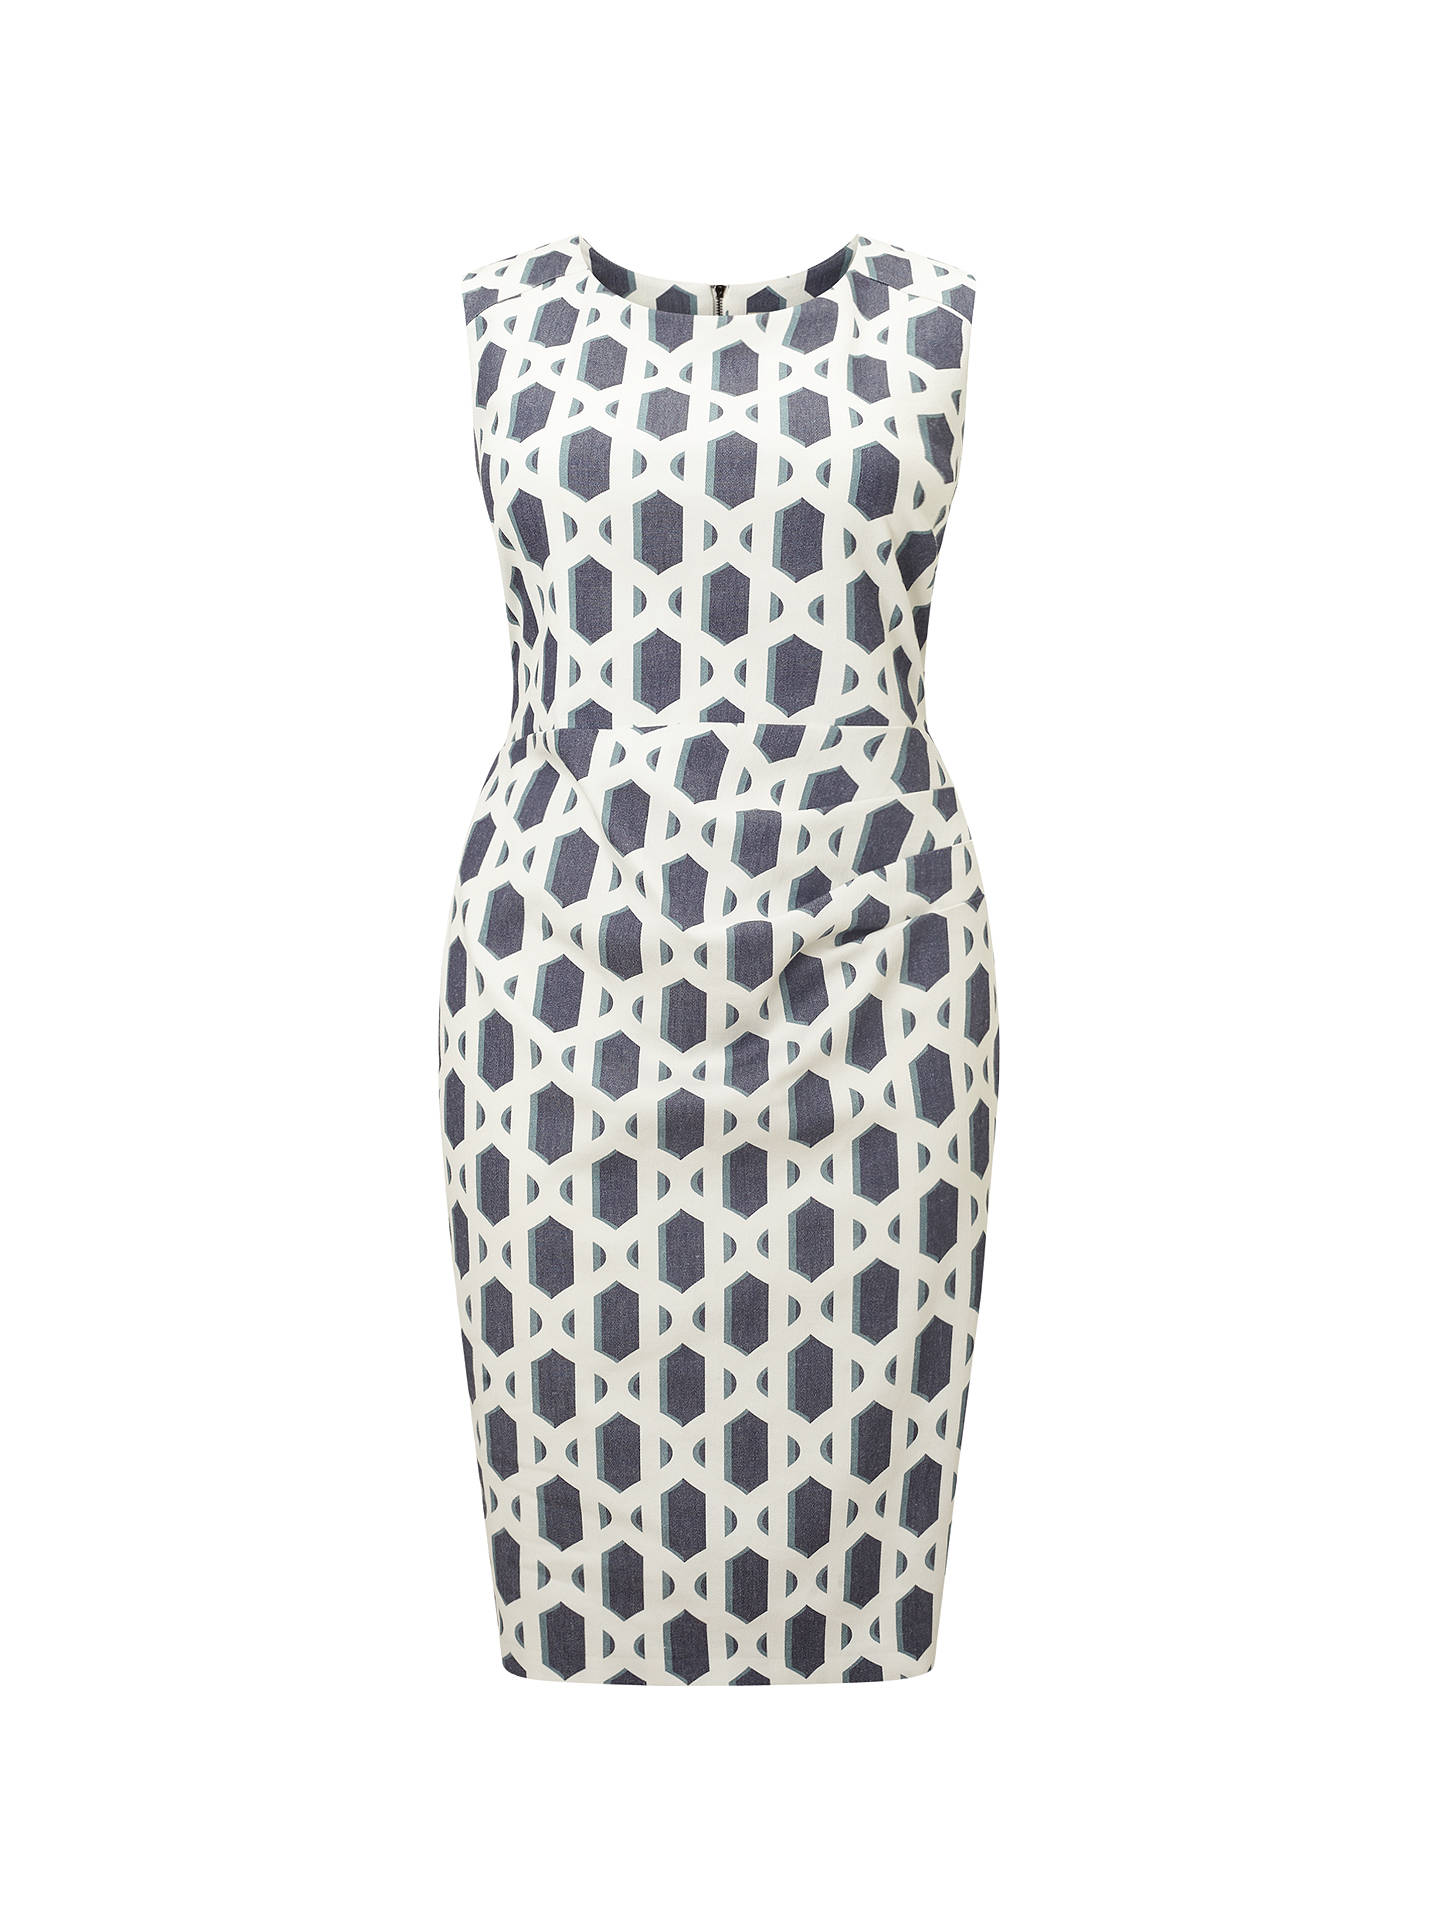 Studio 8 Dannika Dress, Ivory/Blue at John Lewis & Partners